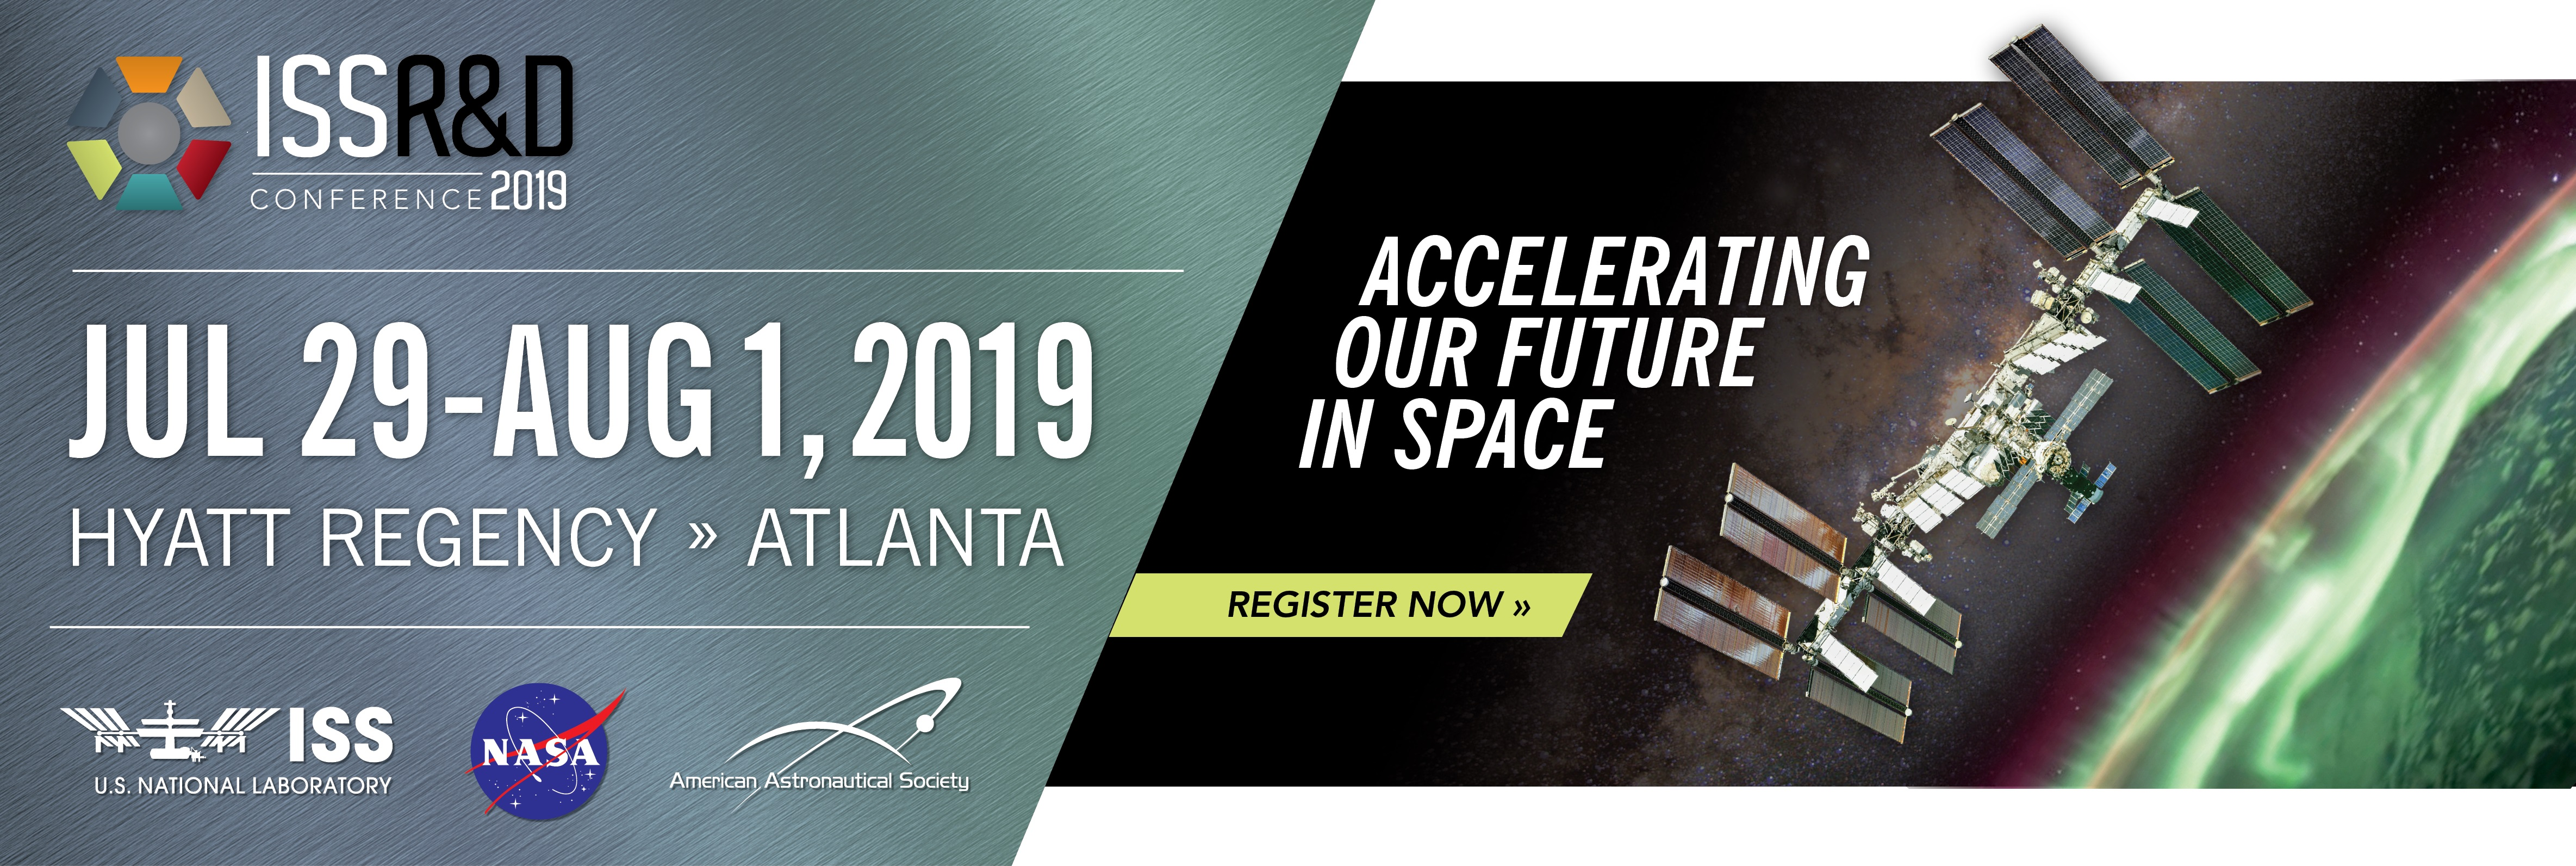 2019 International Space Station Research & Development Conference